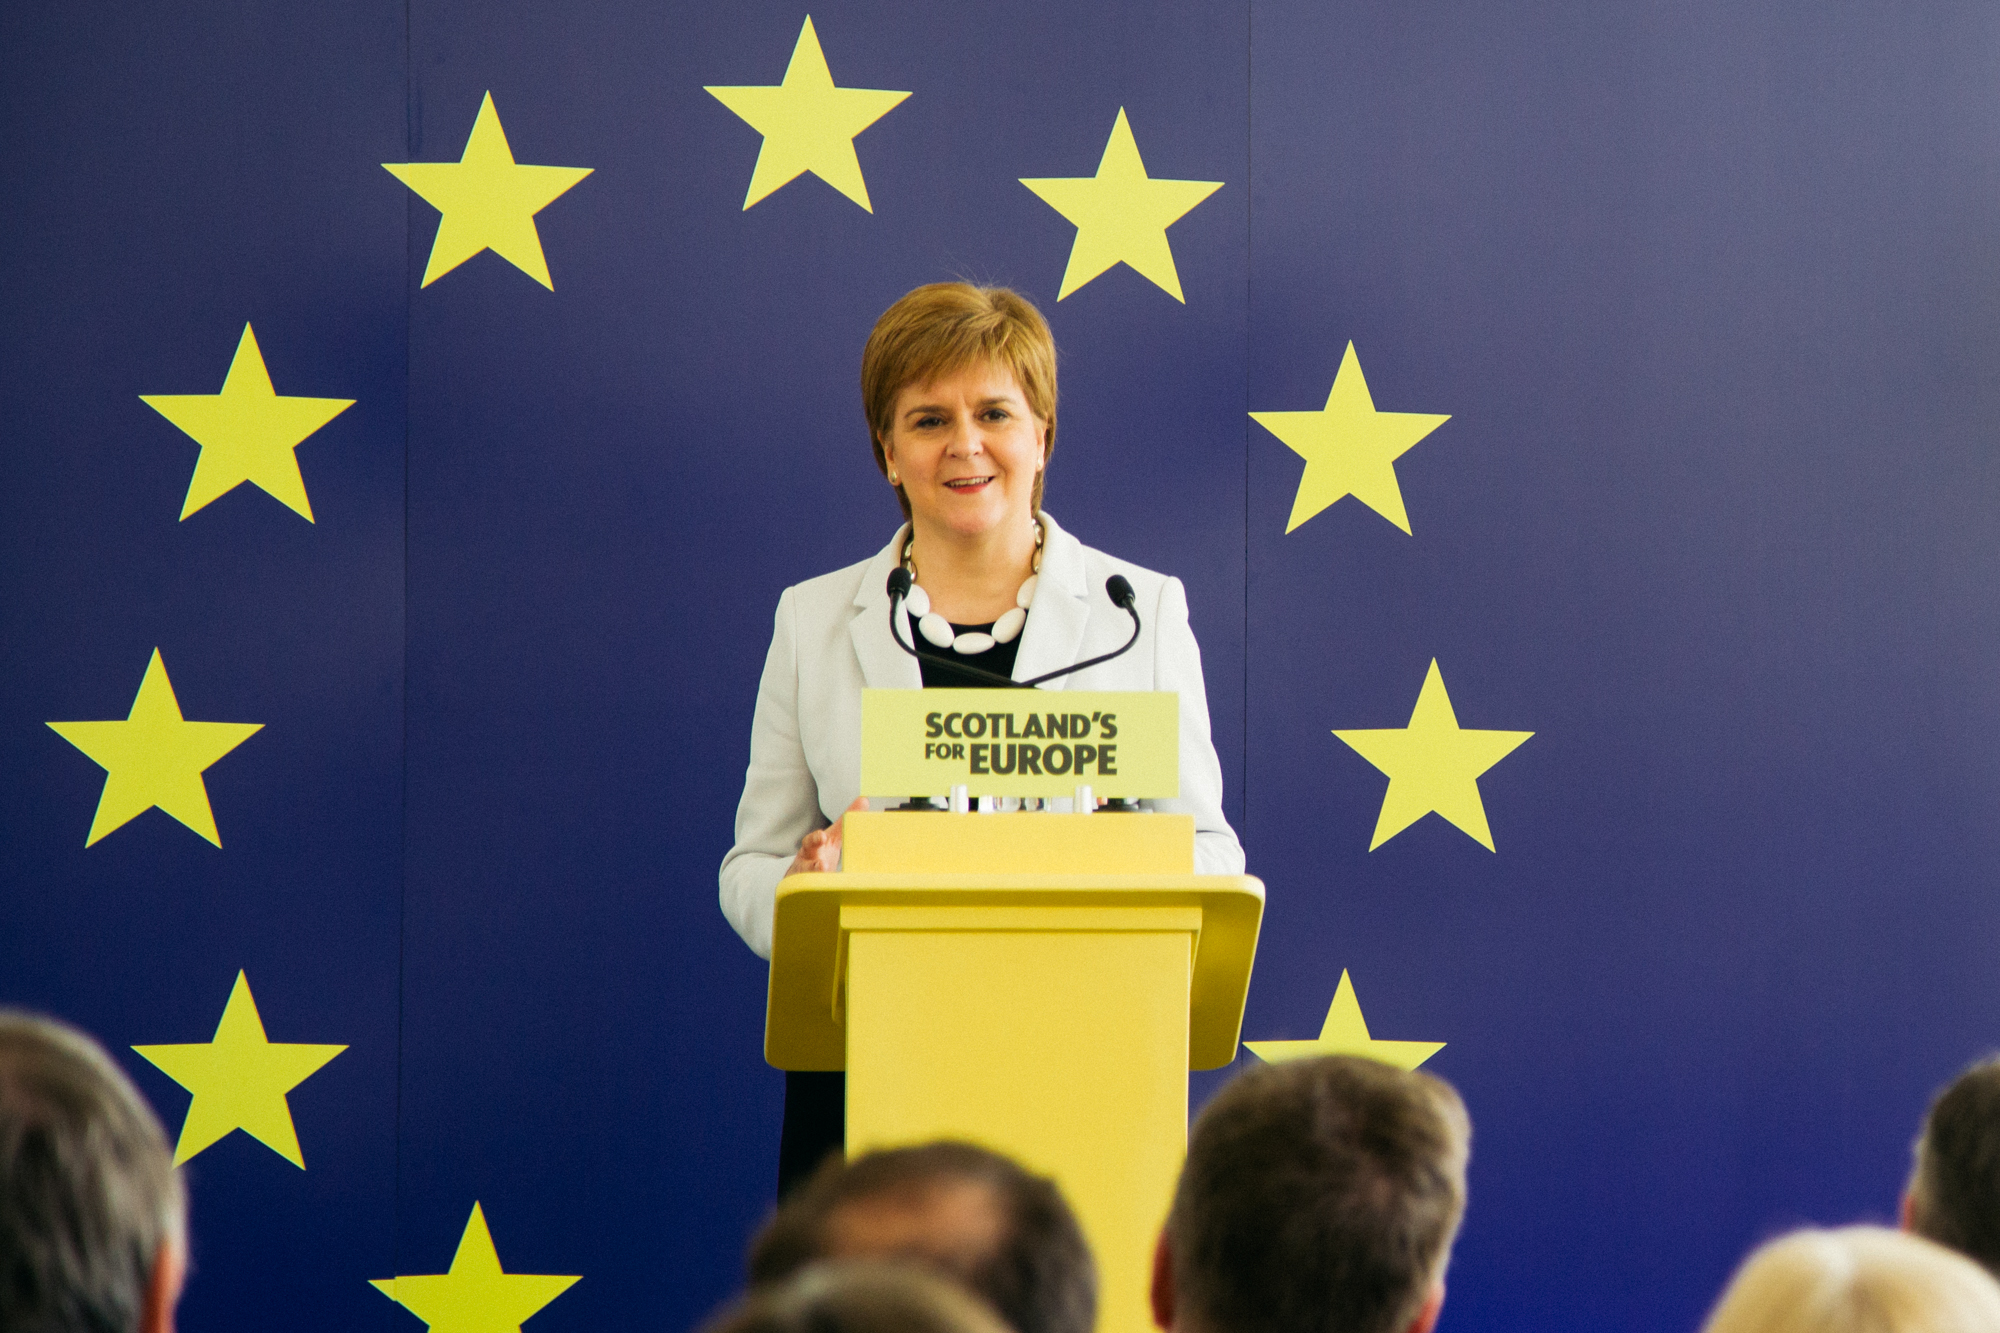 EU citizens will always have a home in Scotland